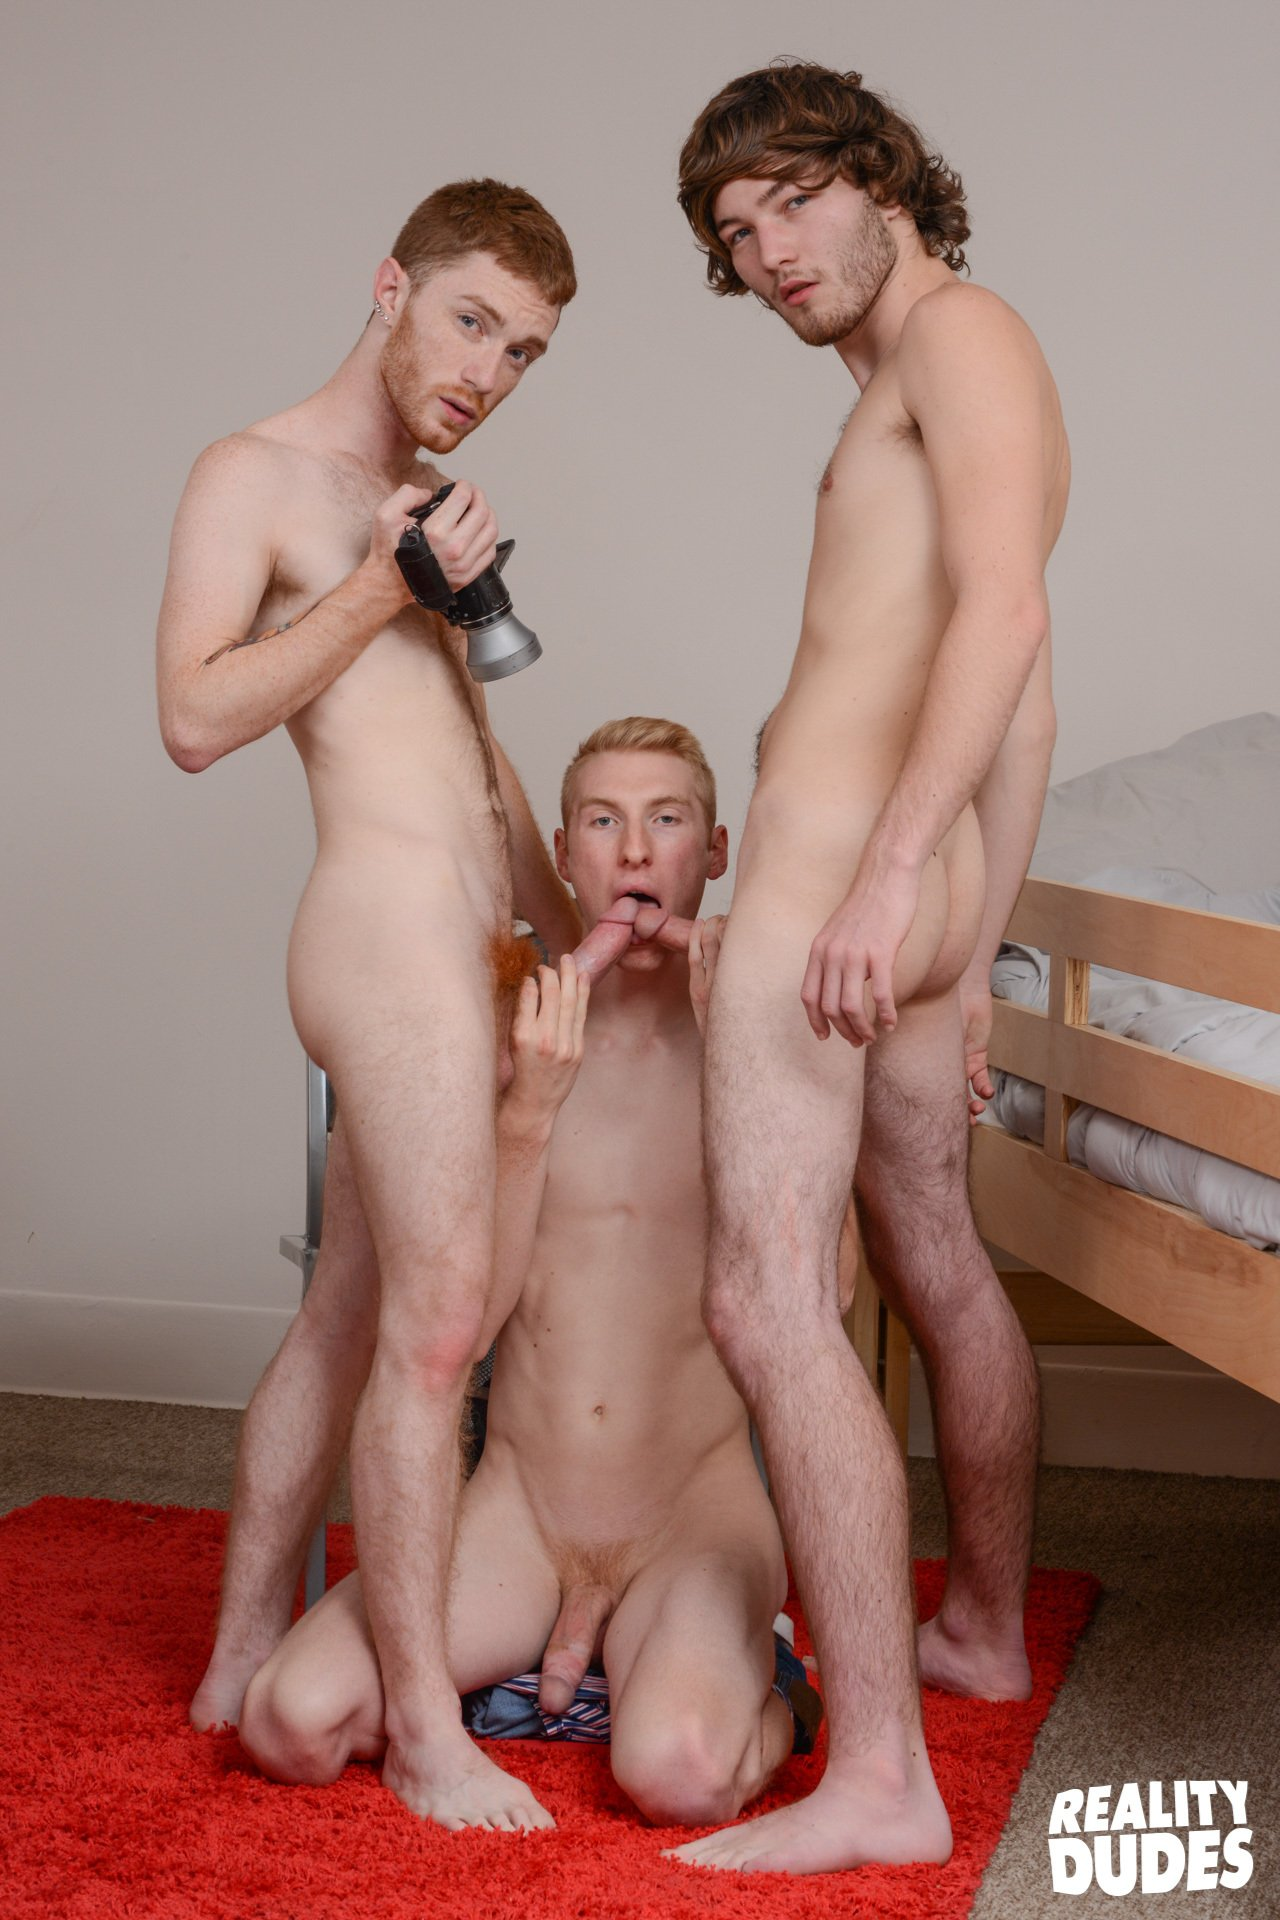 Life In The Dick Dorm At Reality Dudes - Gaydemon-9856